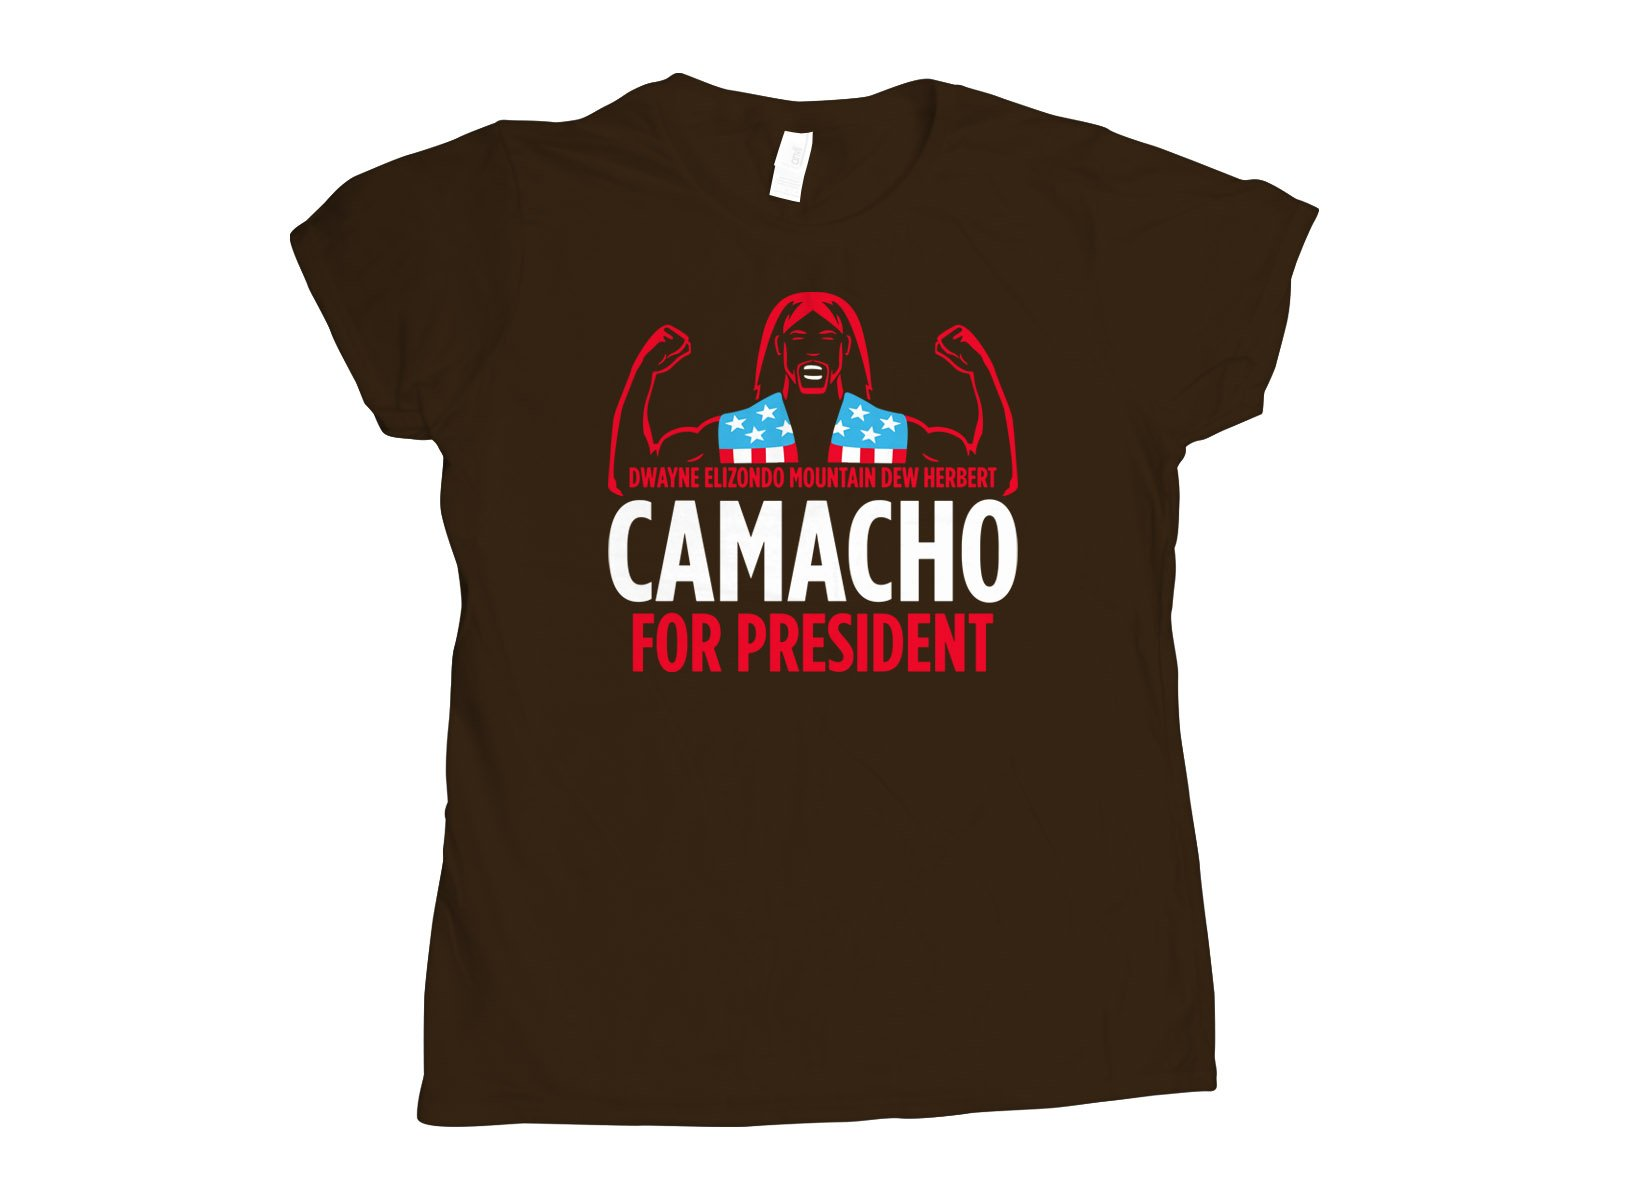 Camacho For President on Womens T-Shirt